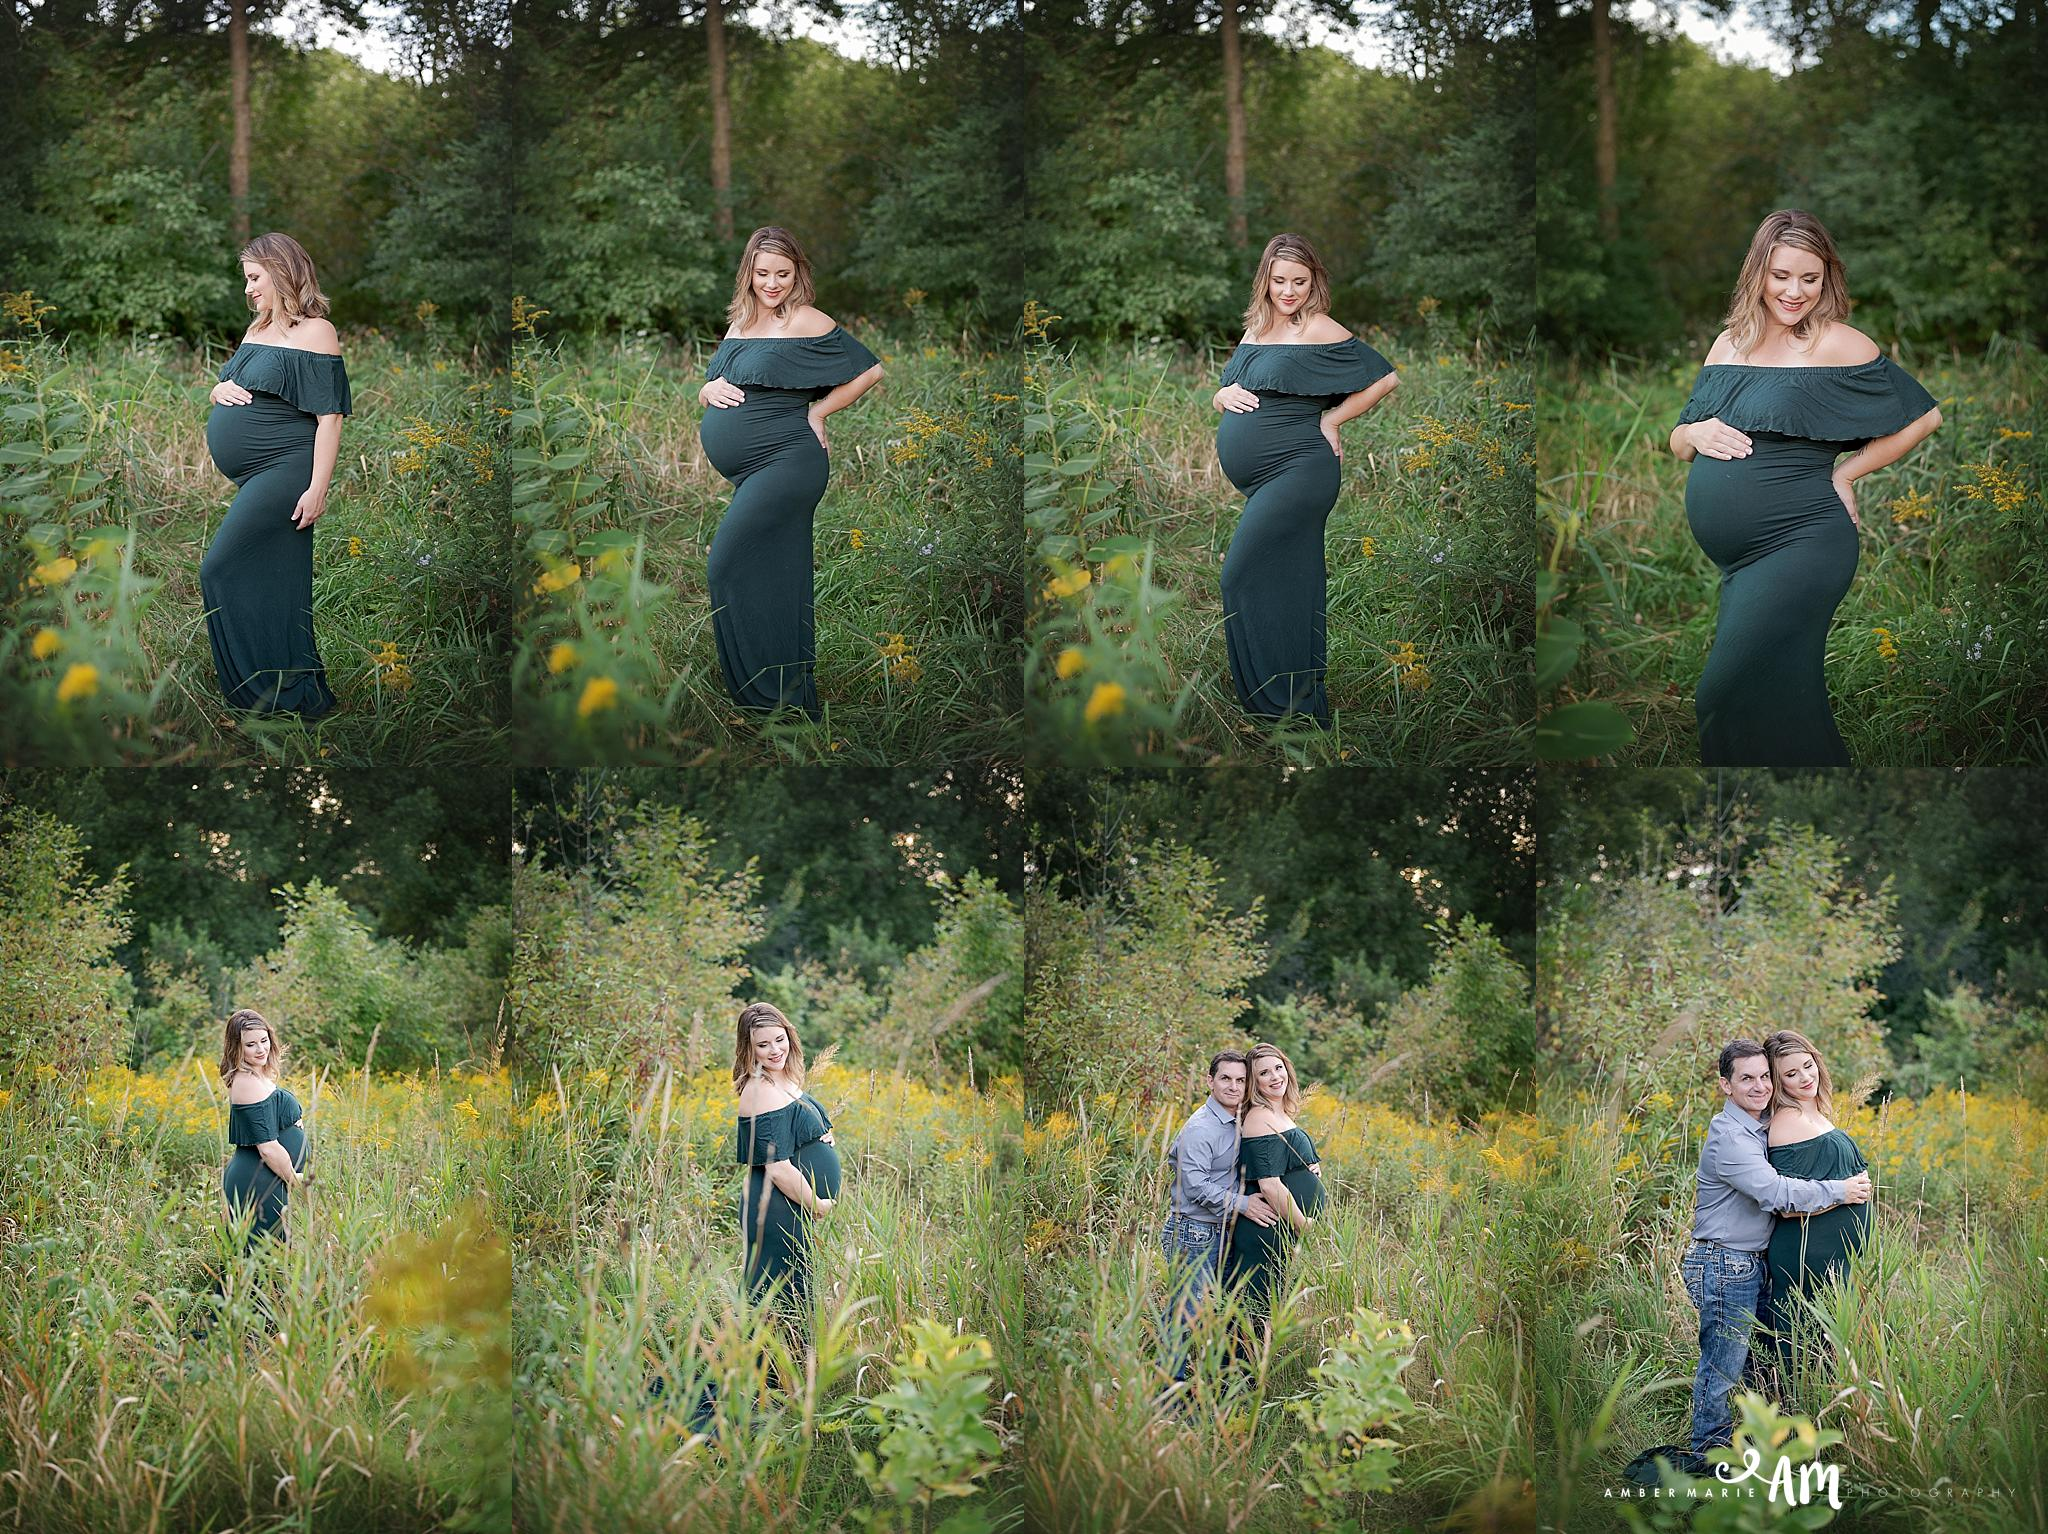 MN_Maternity_Photographer4.jpg